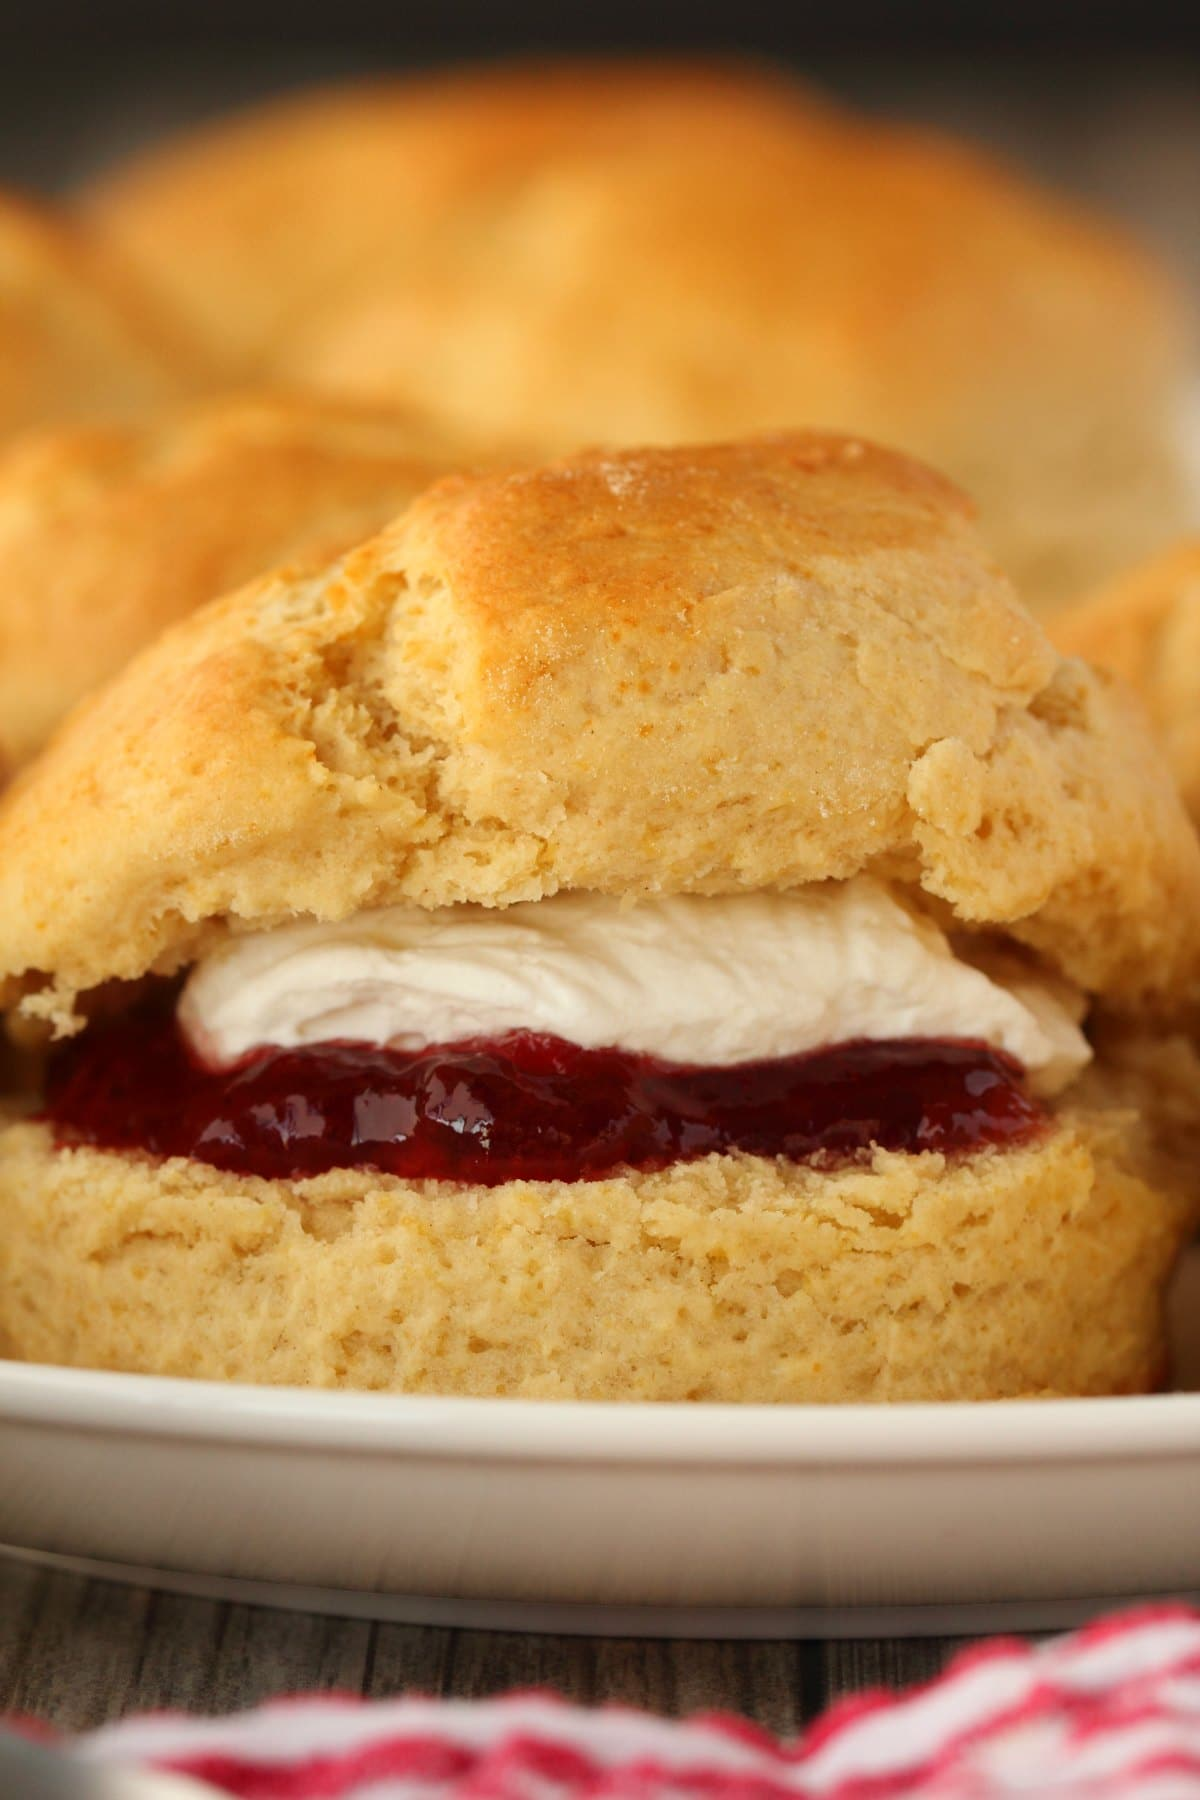 Vegan scone with jam and whipped cream in the middle, on a white plate.